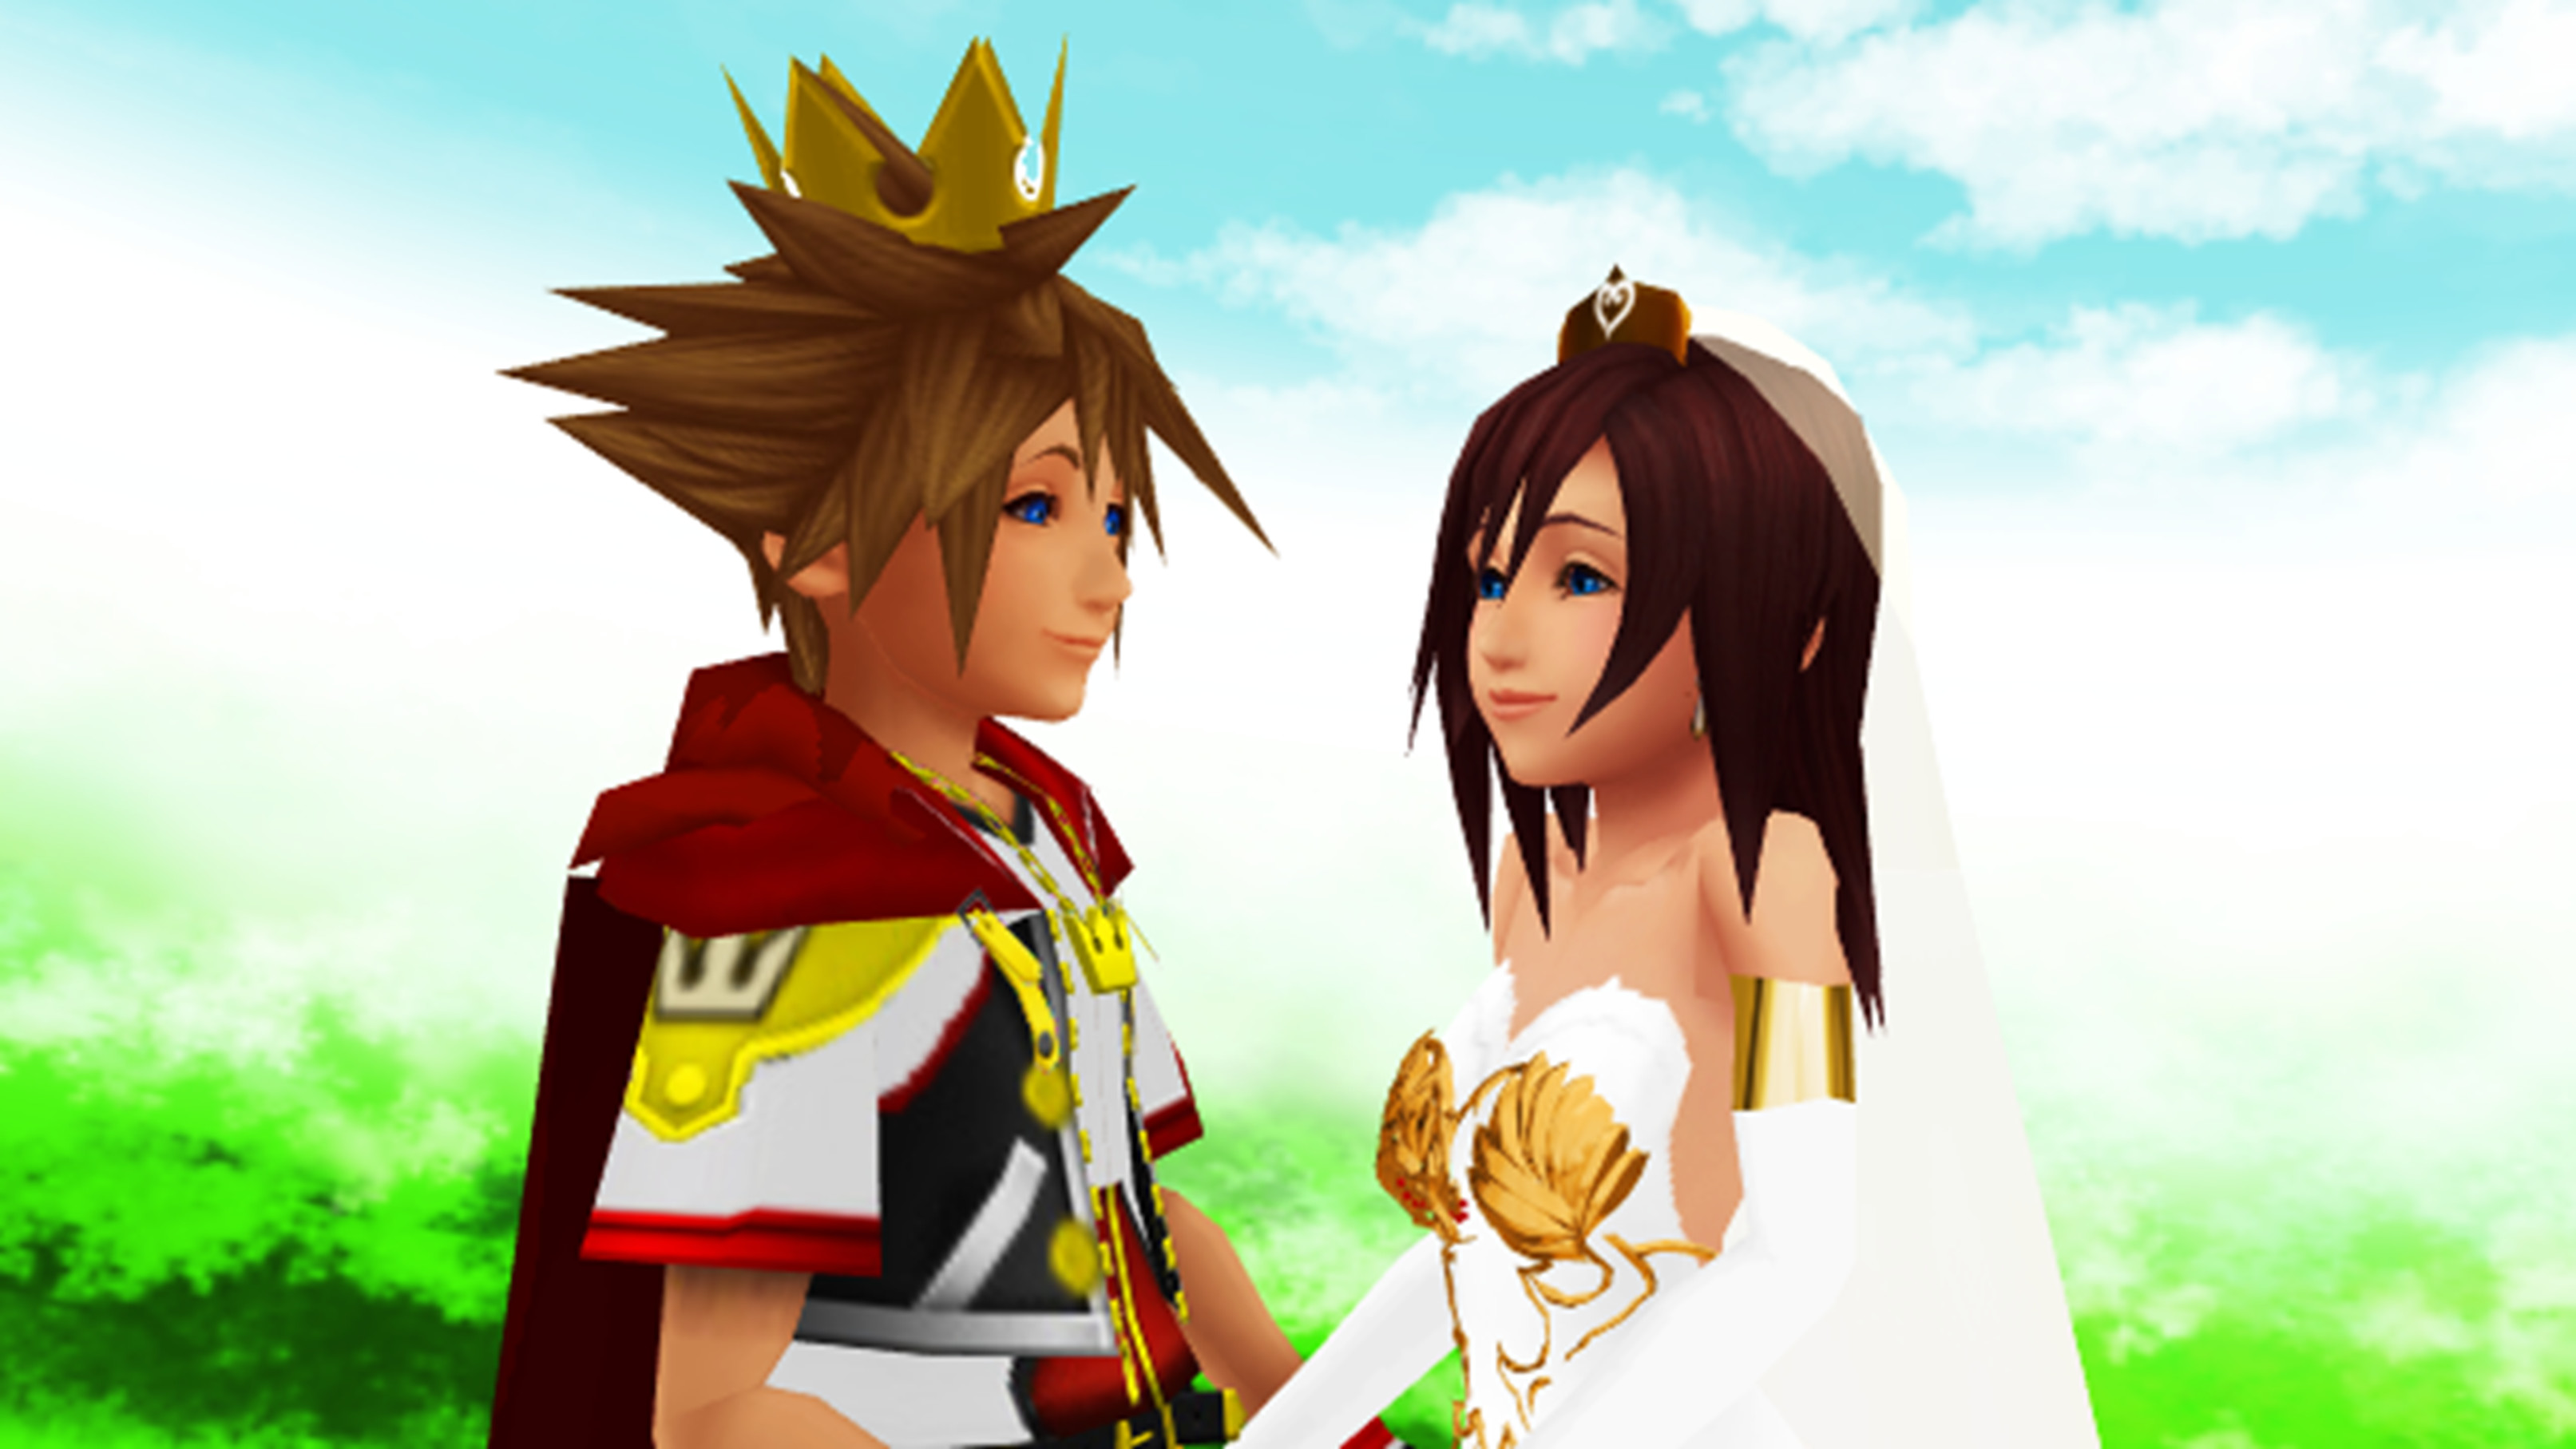 Res: 3226x1815, kingdom-hearts-sora-and-kairi-wallpaper